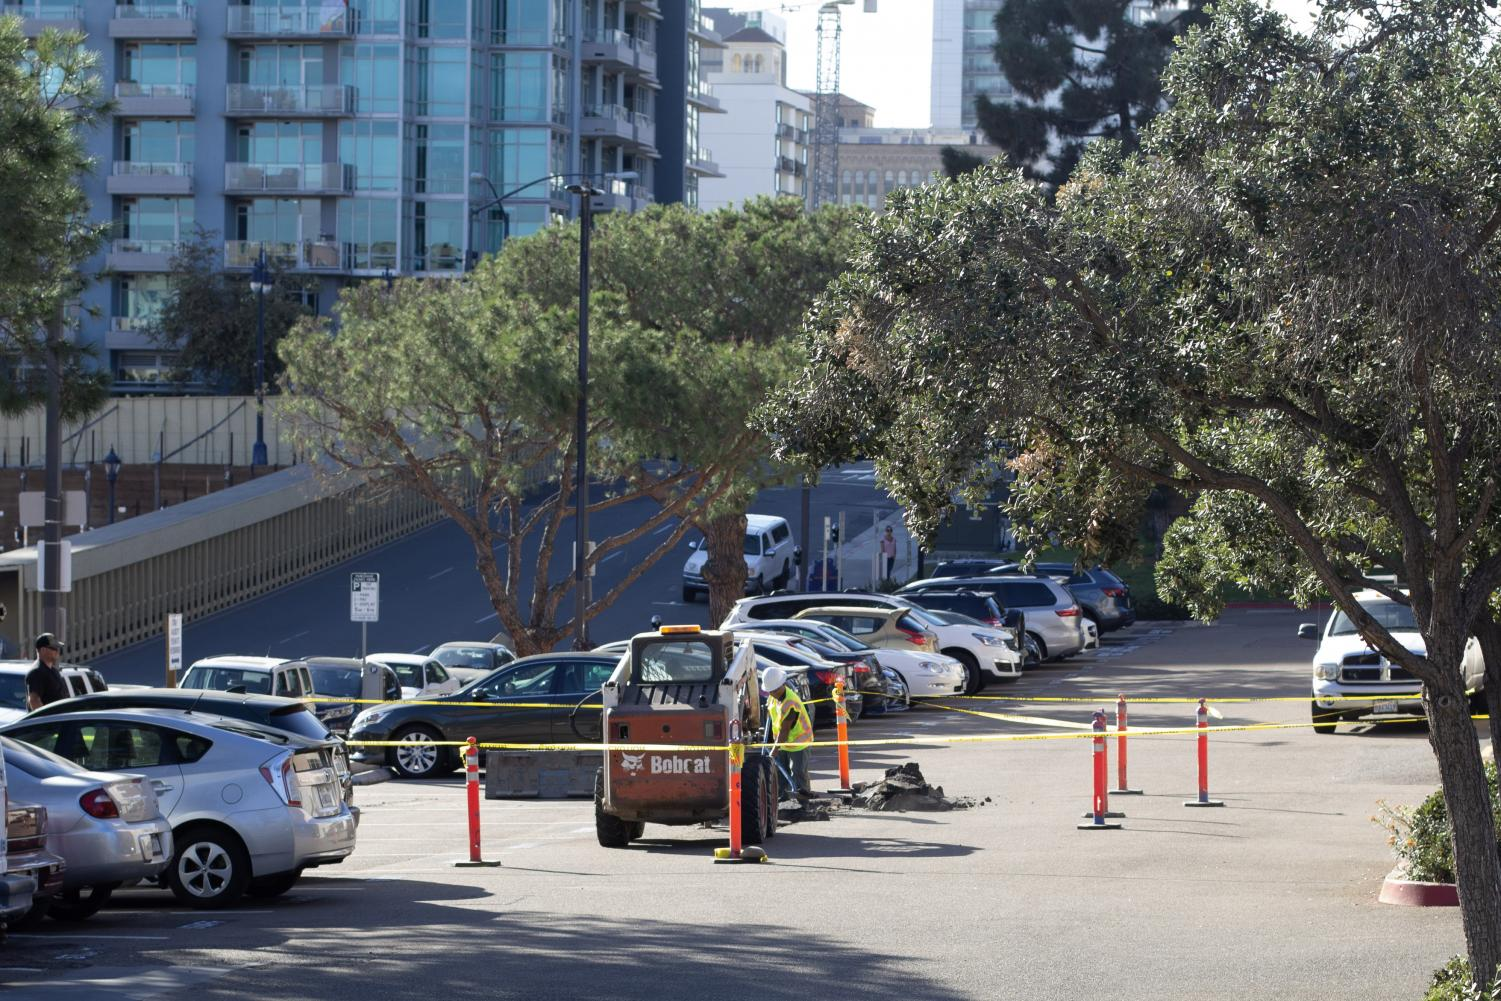 Facilities immediately started working on stopping the water leak in parking lot 8. Photo by David Ahumada, City Times.